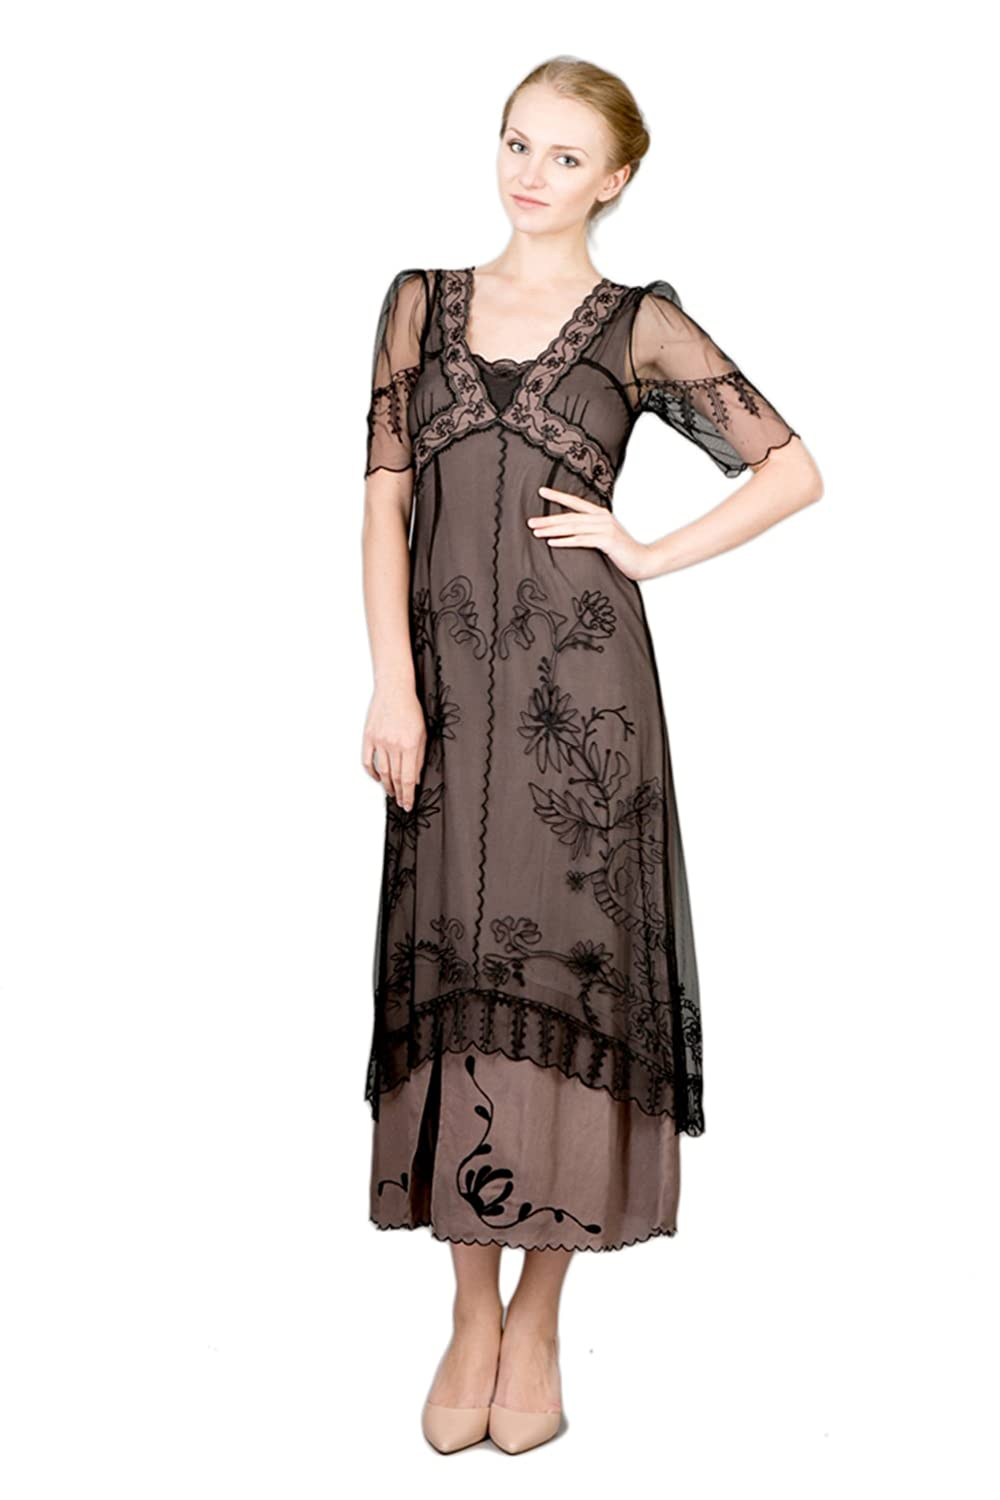 Women s Titanic Vintage Style Dress in Black Coco at Amazon Women s Clothing  store  bf2a0c1ee